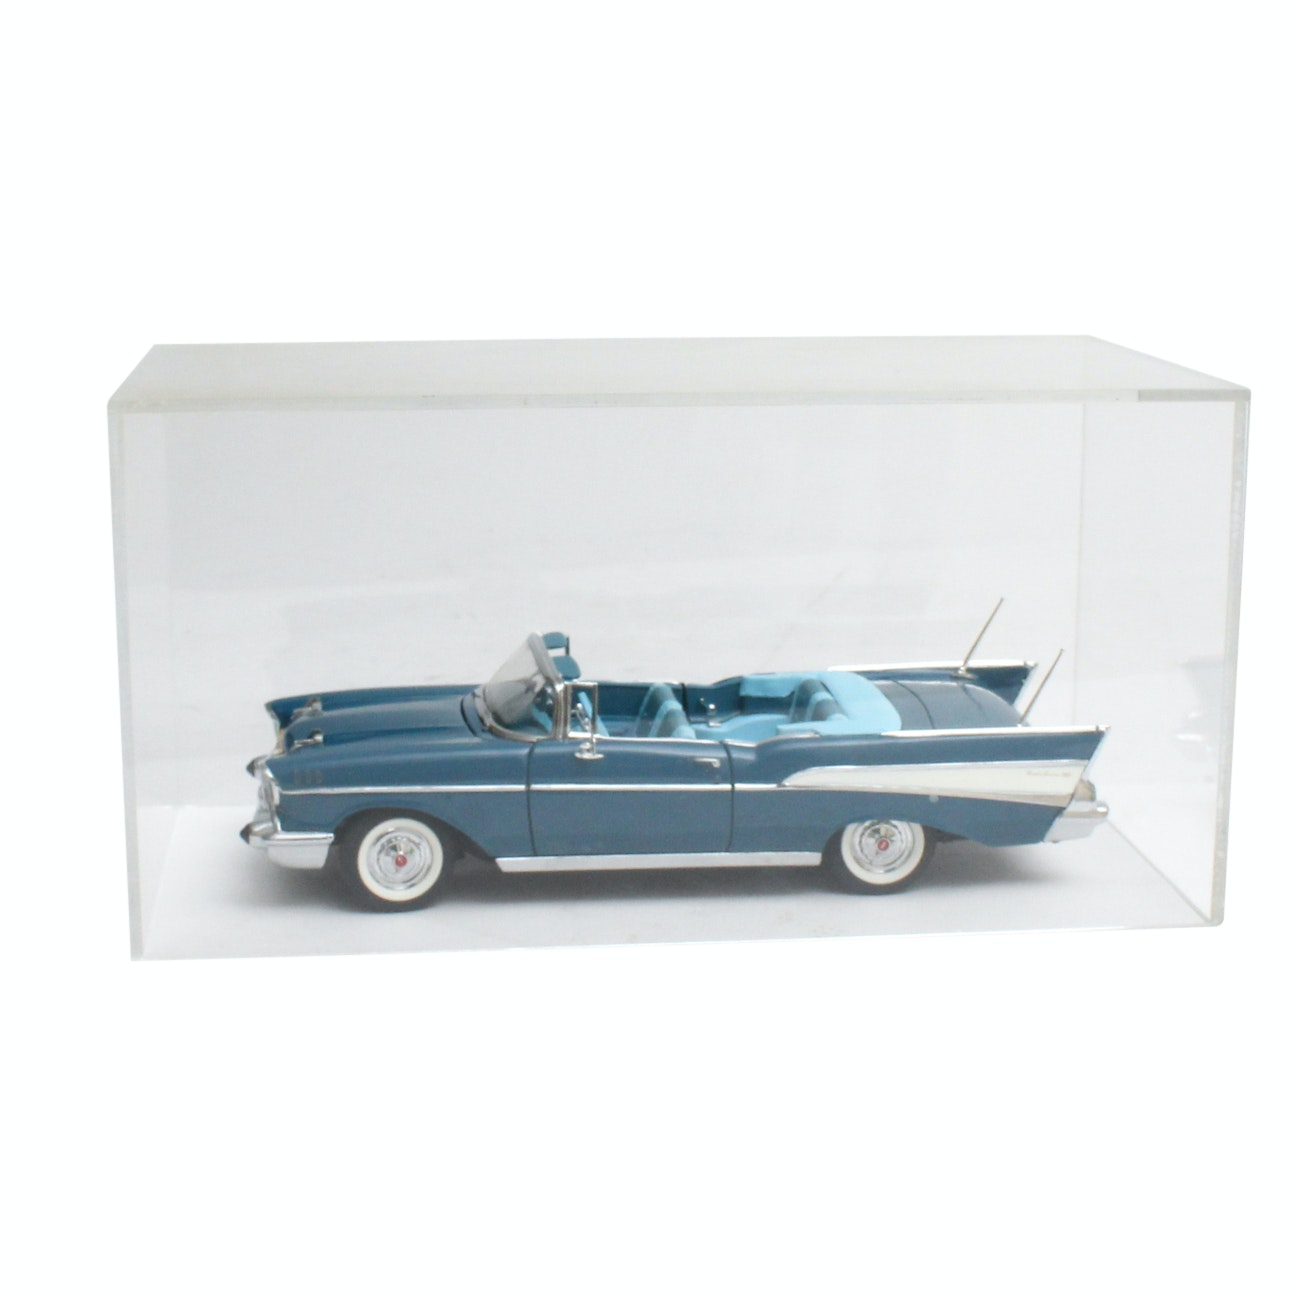 Danbury Mint Die Cast 1957 Chevrolet Bel Air